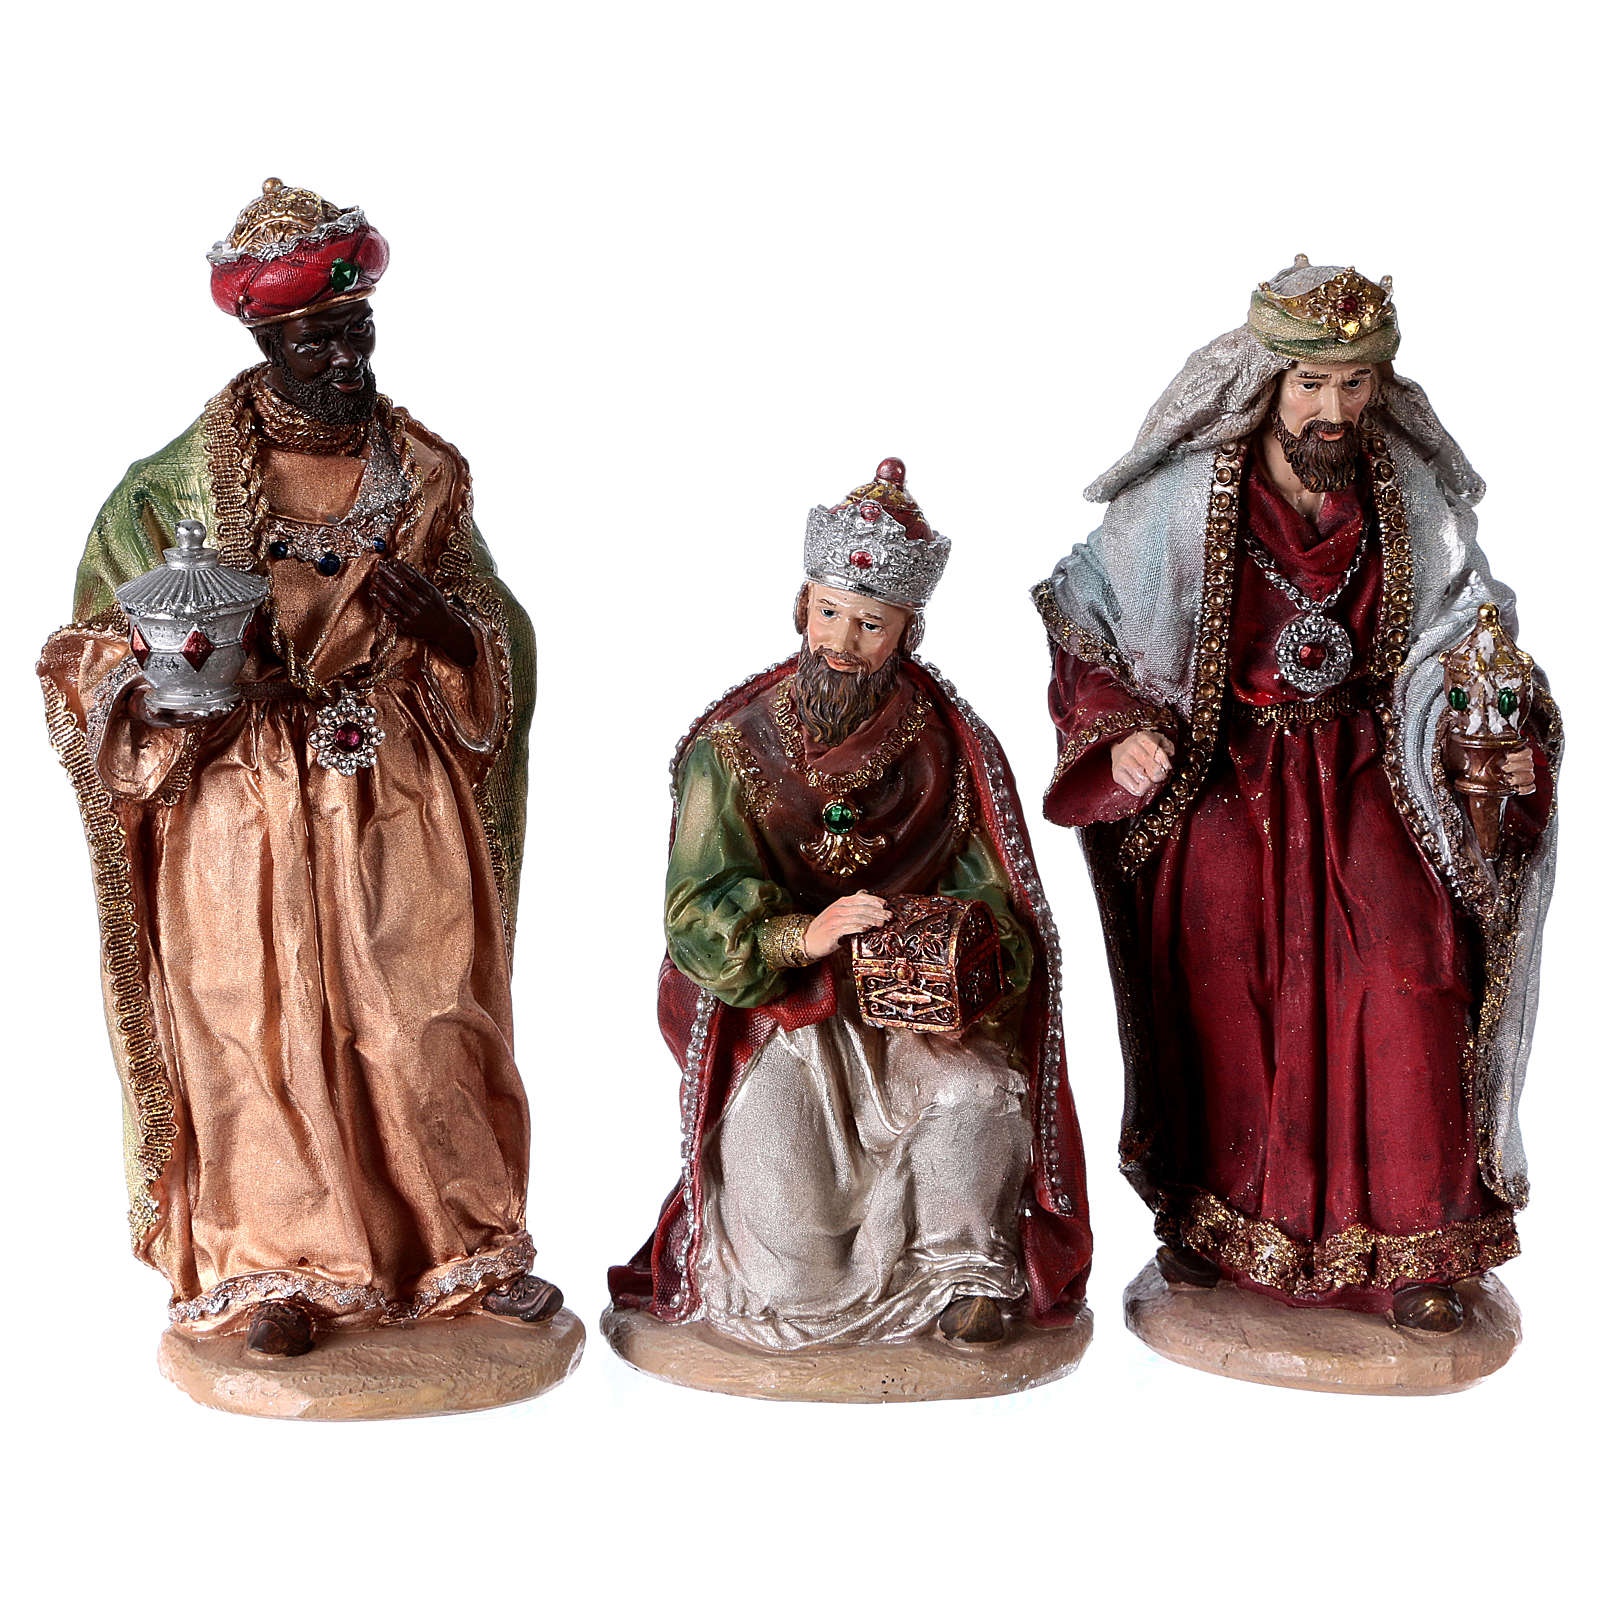 Colored Nativity Scene 28 cm, set of 8 figurines 4